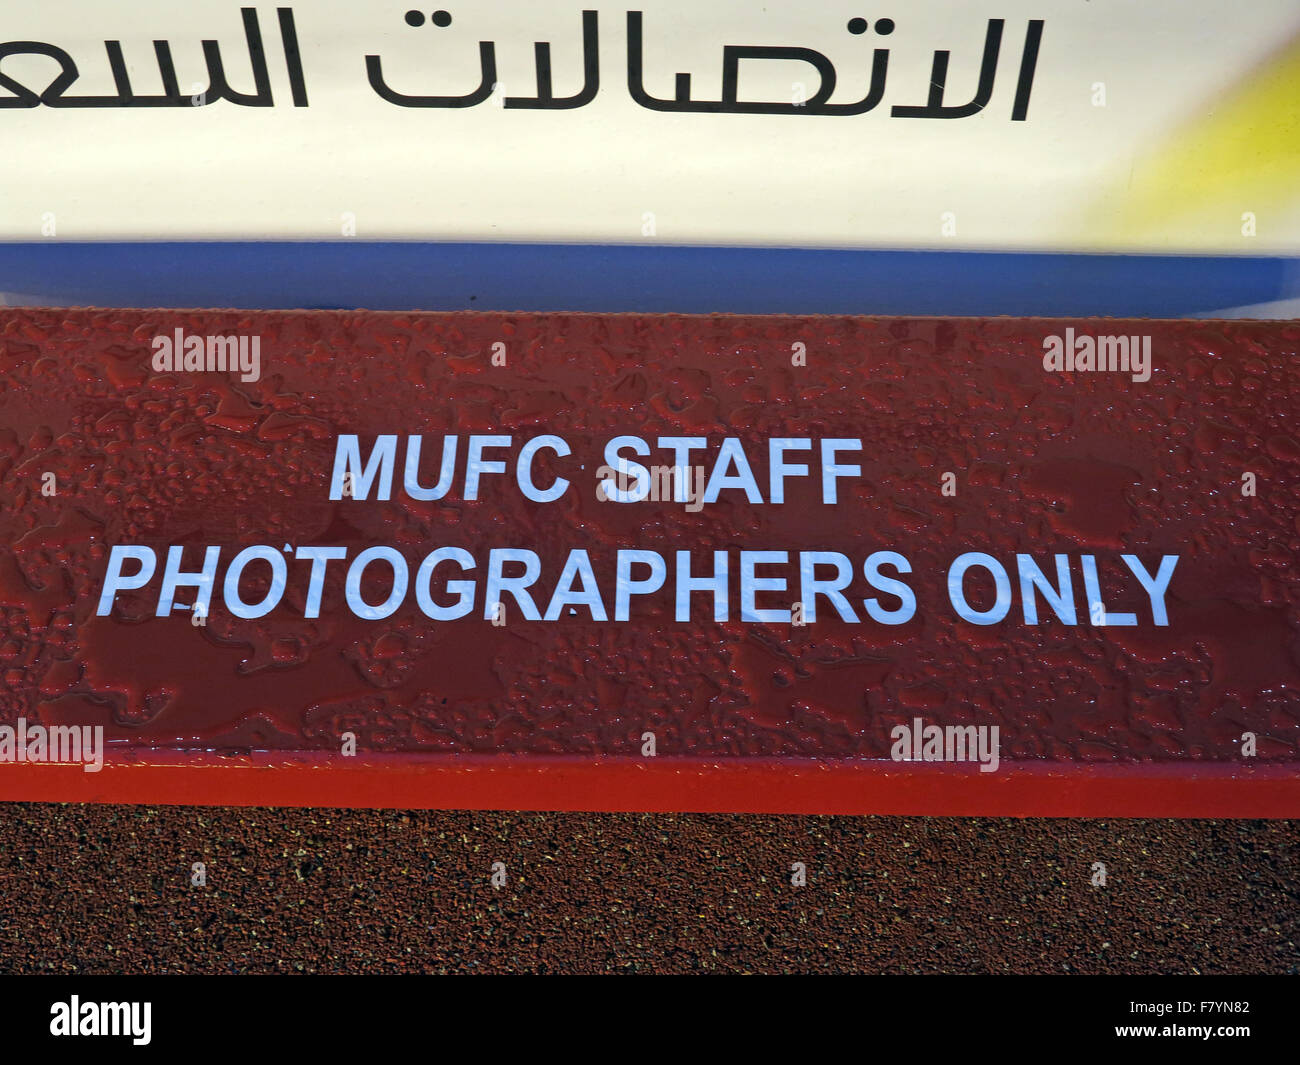 MUFC,Staff,Photographers,Only,bench,trafford,Manchester,England,UK,ManchesterUnited,MUFC,Mancester,MU,old,Trafford,theatre,of,dreams,Lancs,Lancashire,RedDevils,Red,Devils,Football,Club,FC,allseater,all-seater,Old Trafford,Old Trafford,Theatre of Dreams,Theater of dreams,Red Devils,GoTonySmith,ManchesterUnited,MUFC,Mancester,MU,old,Trafford,theatre,of,dreams,Lancs,Lancashire,RedDevils,Red,Devils,Football,Club,FC,allseater,all-seater,association,away,balls,betting,britain,british,champions,changing,coaches,competition,culture,cups,division,documentary,dressing,england,english,fans,fixtures,game,goals,ground,heritage,history,home,homesoffootball,hooliganism,justice,kick,kick-off,league,managers,midweek,pitch,players,police,premier,promotion,referees,regulations,relegation,results,room,roots,rules,saturday,saturdays,scorers,season,seated,seater,seating,shinpads,shirt,shirts,sizes,sky,skysports,soccer,social,socks,sponsors,sport,stadia,stadium,standing,sundays,sunday,system,tables,team,terraces,tradition,trainers,Adidas,Puma,Buy Pictures of,Buy Images Of,Old Trafford,Theatre of Dreams,Theater of dreams,Red Devils